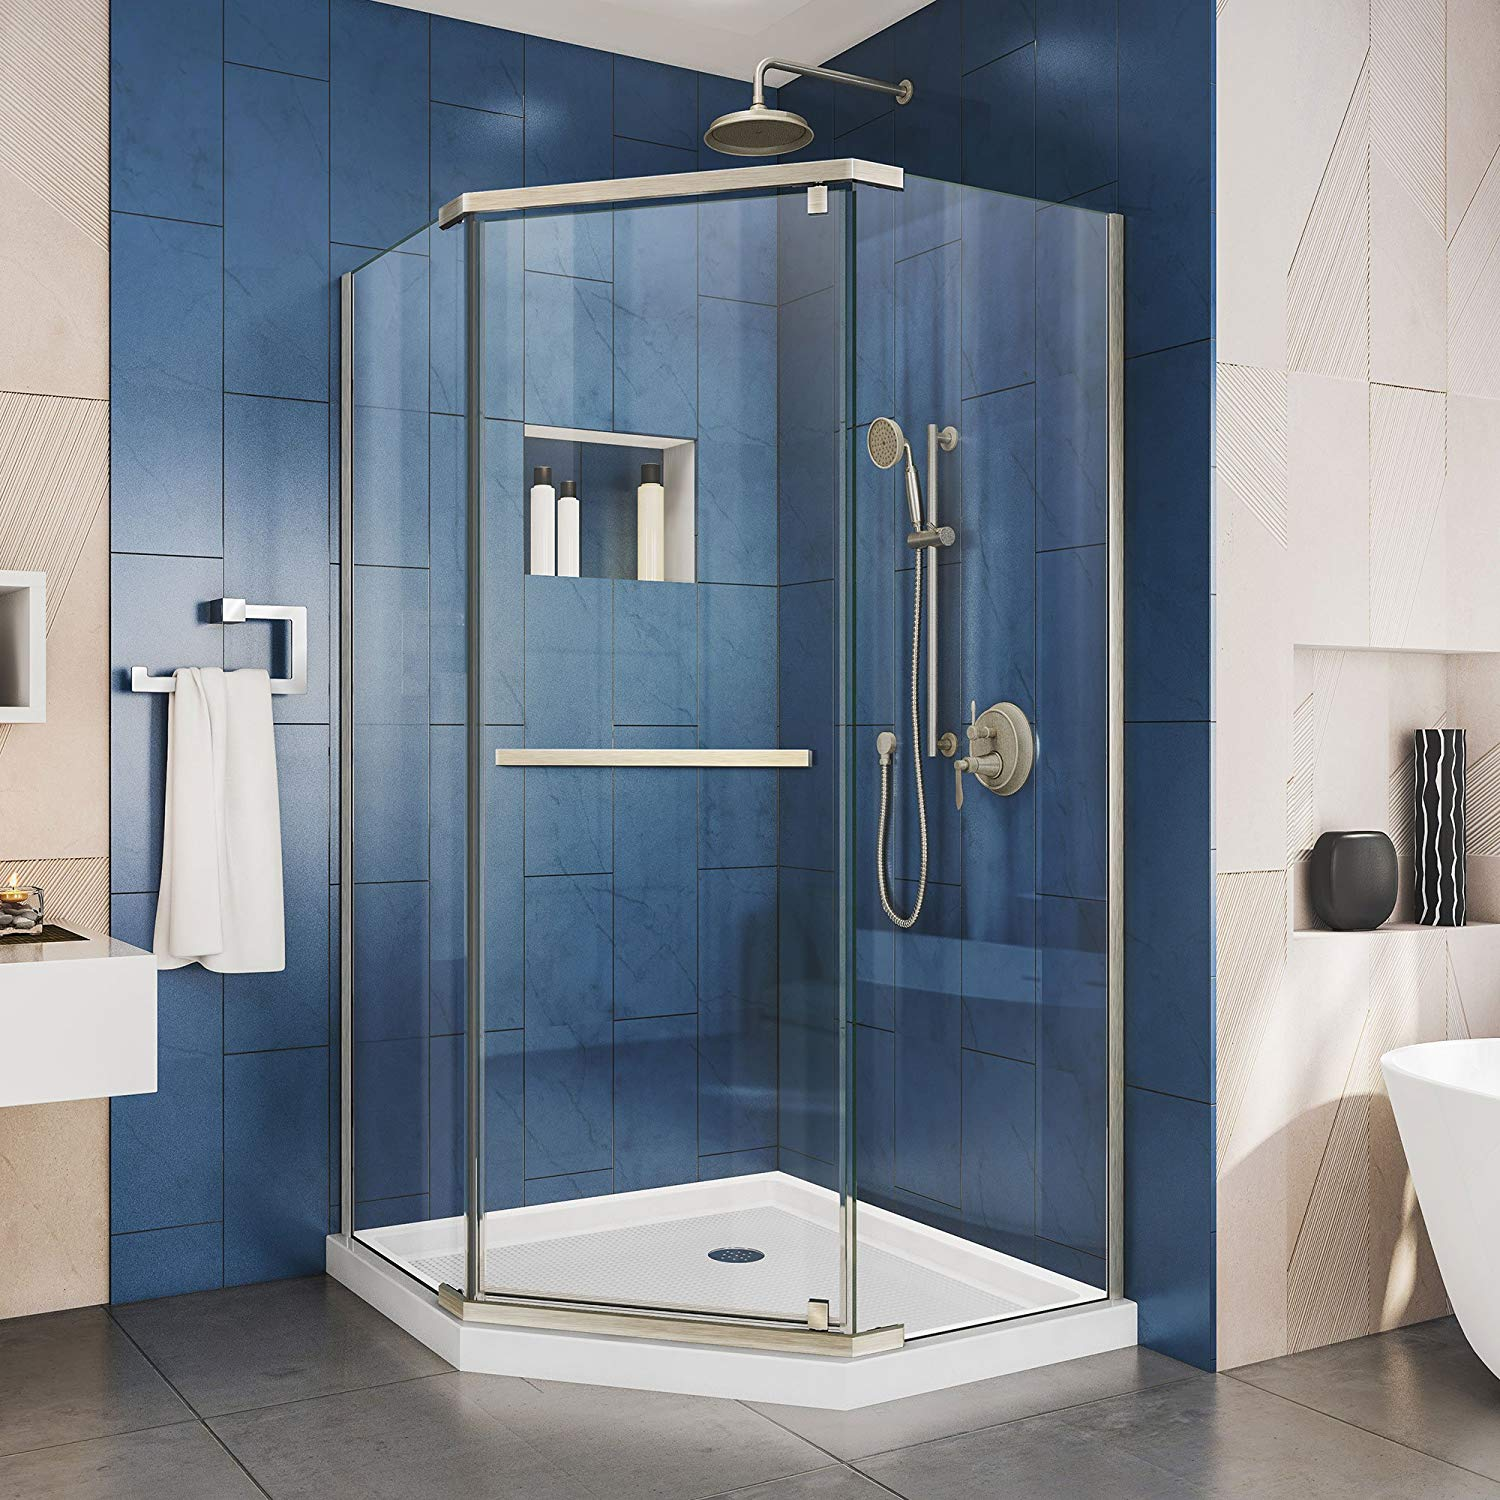 DreamLine SHEN-2134340-04 Prism Shower Enclosure